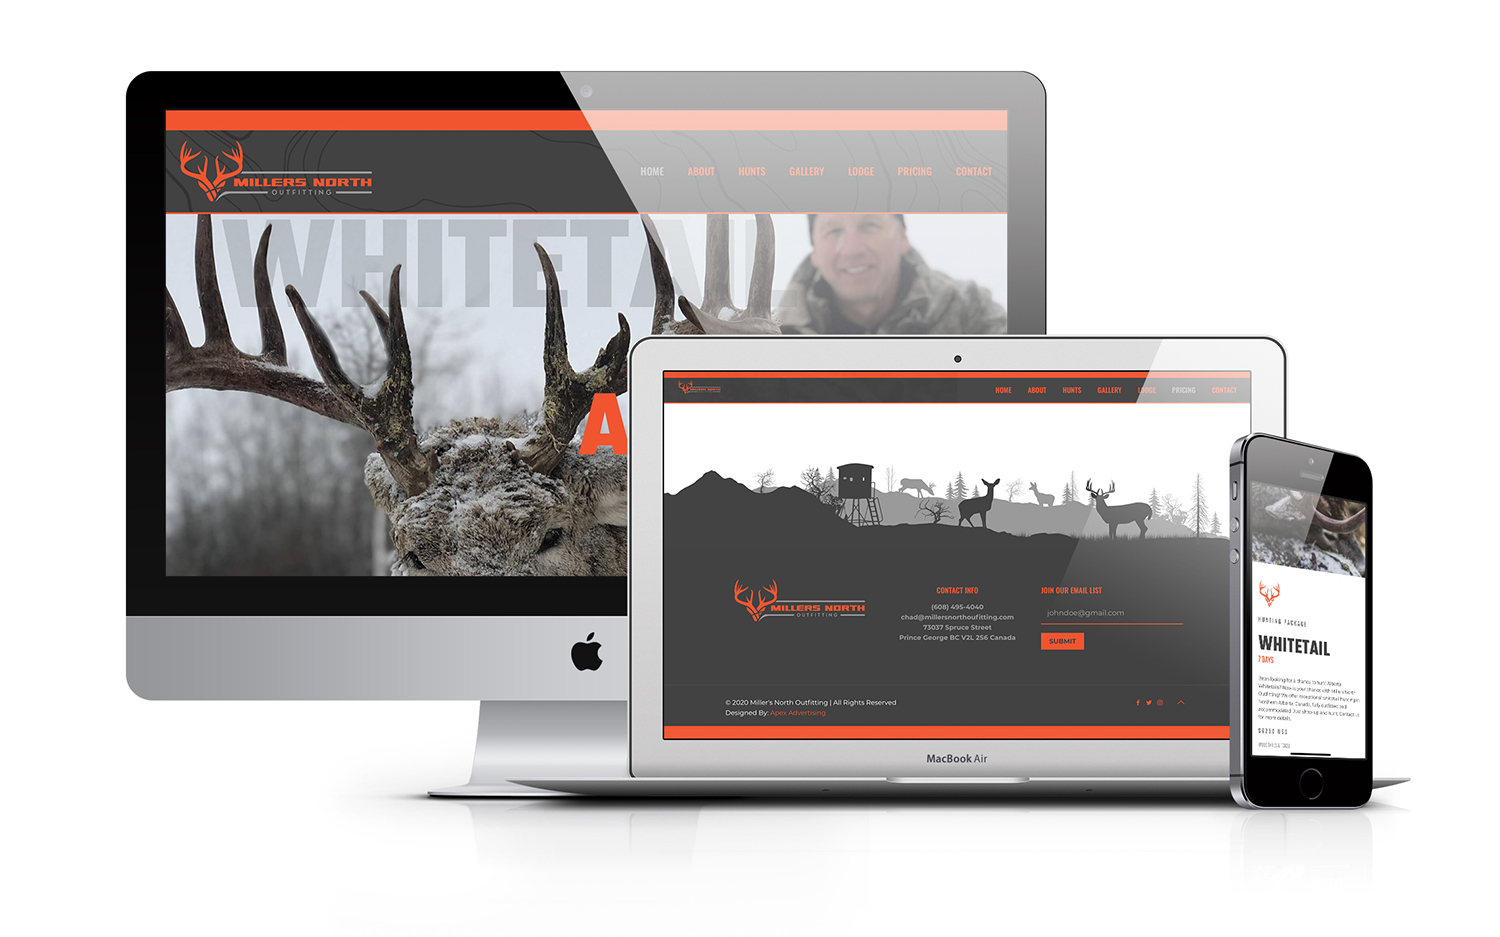 Millers North Outfitting Alberta Whitetail Hunting Website Design